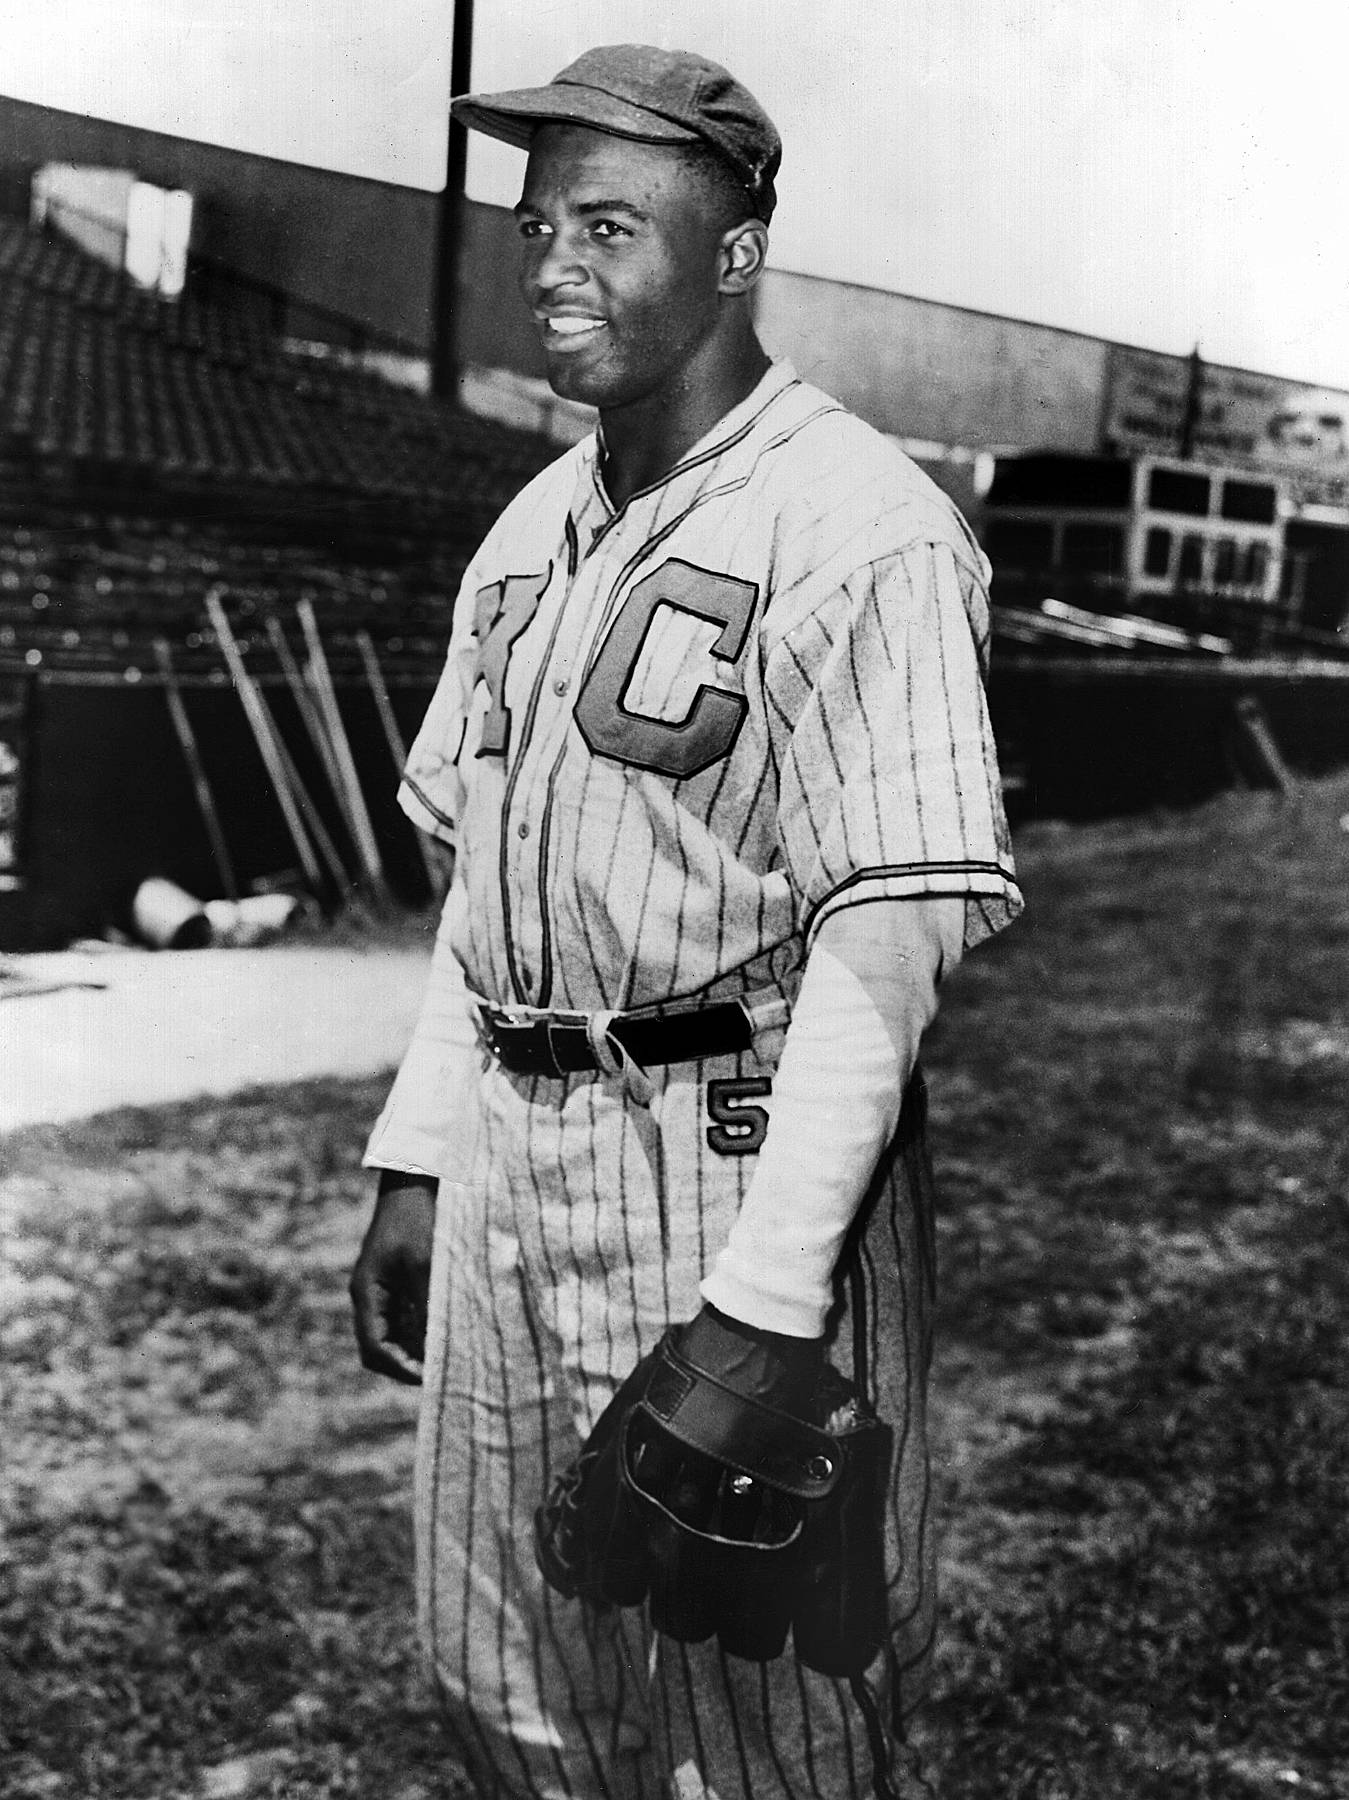 Jackie Robinson - Two years before he broke baseball?s color barrier by joining the Brooklyn Dodgers, Jackie Robinson was a star in the Negro Leagues, playing for the Kansas City Monarchs in 1945. The second baseman was inducted under the Dodgers in 1962.(Photo: Sporting News via Getty Images)